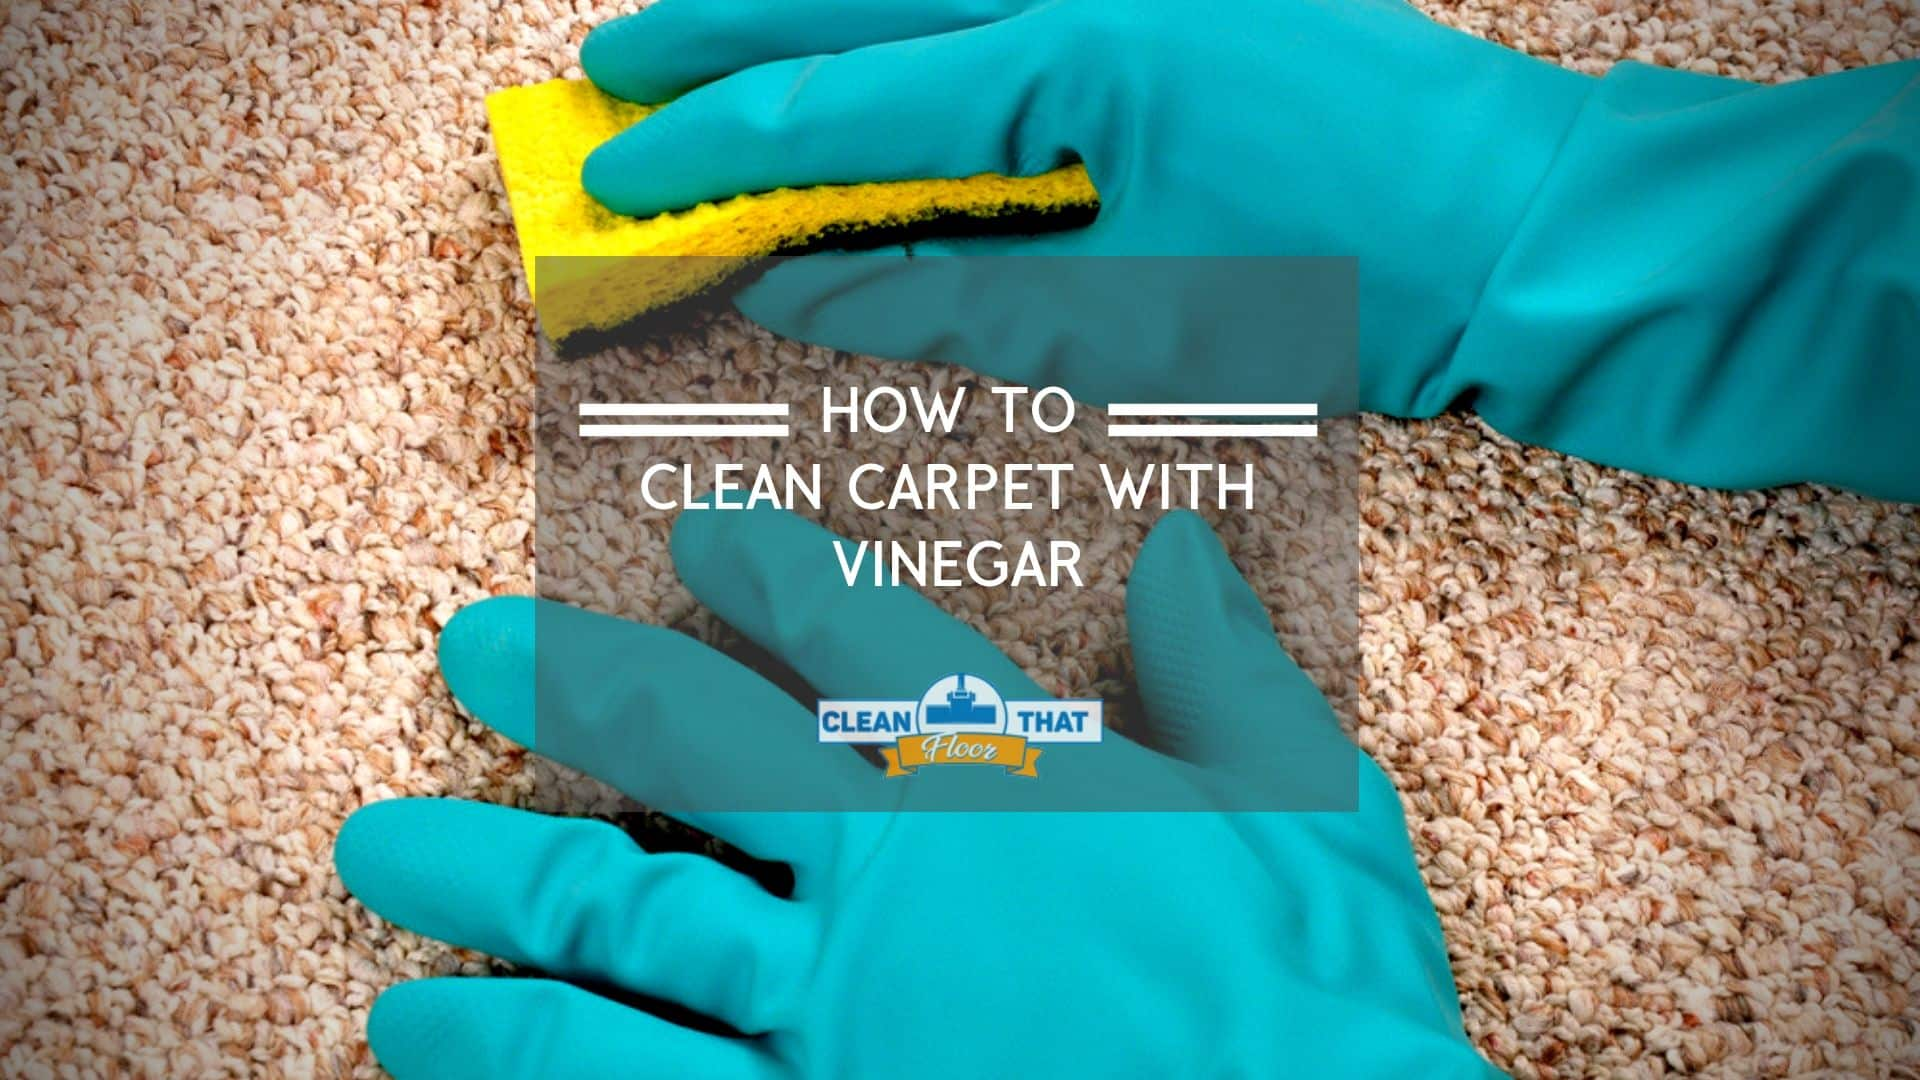 Image of cleaning a carpet with vinegar